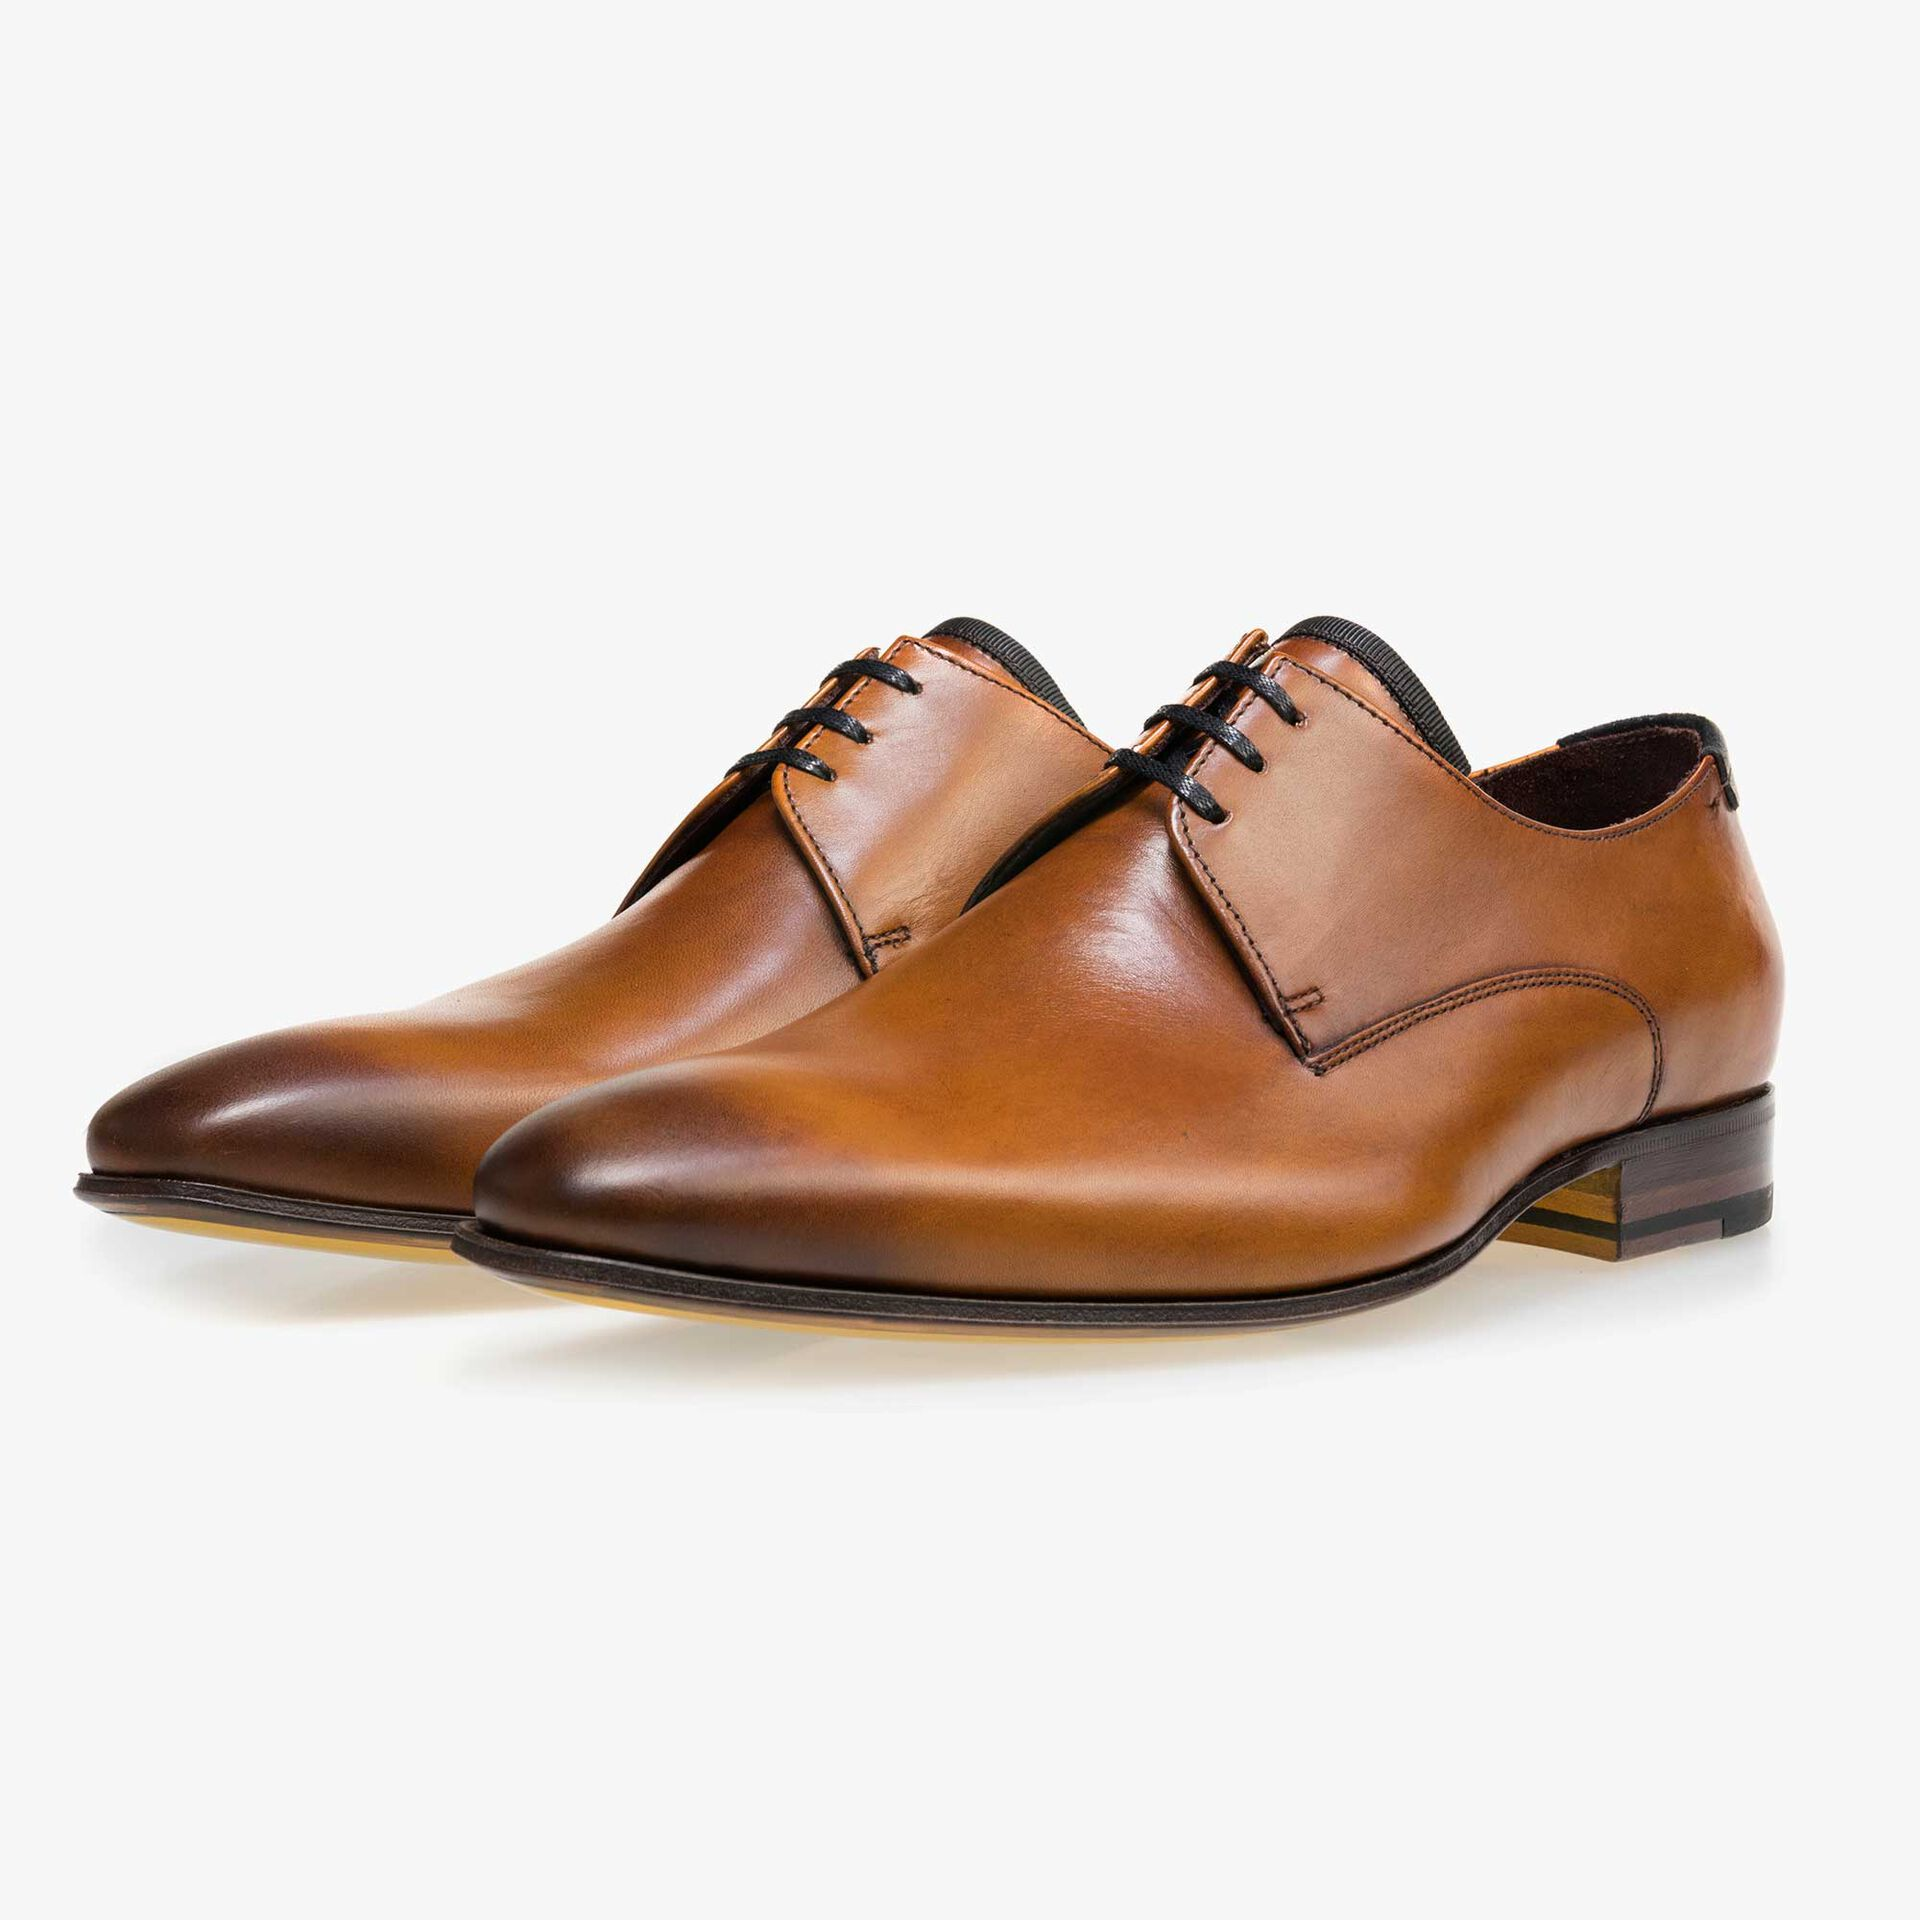 Cognac-coloured calf's leather lace shoe